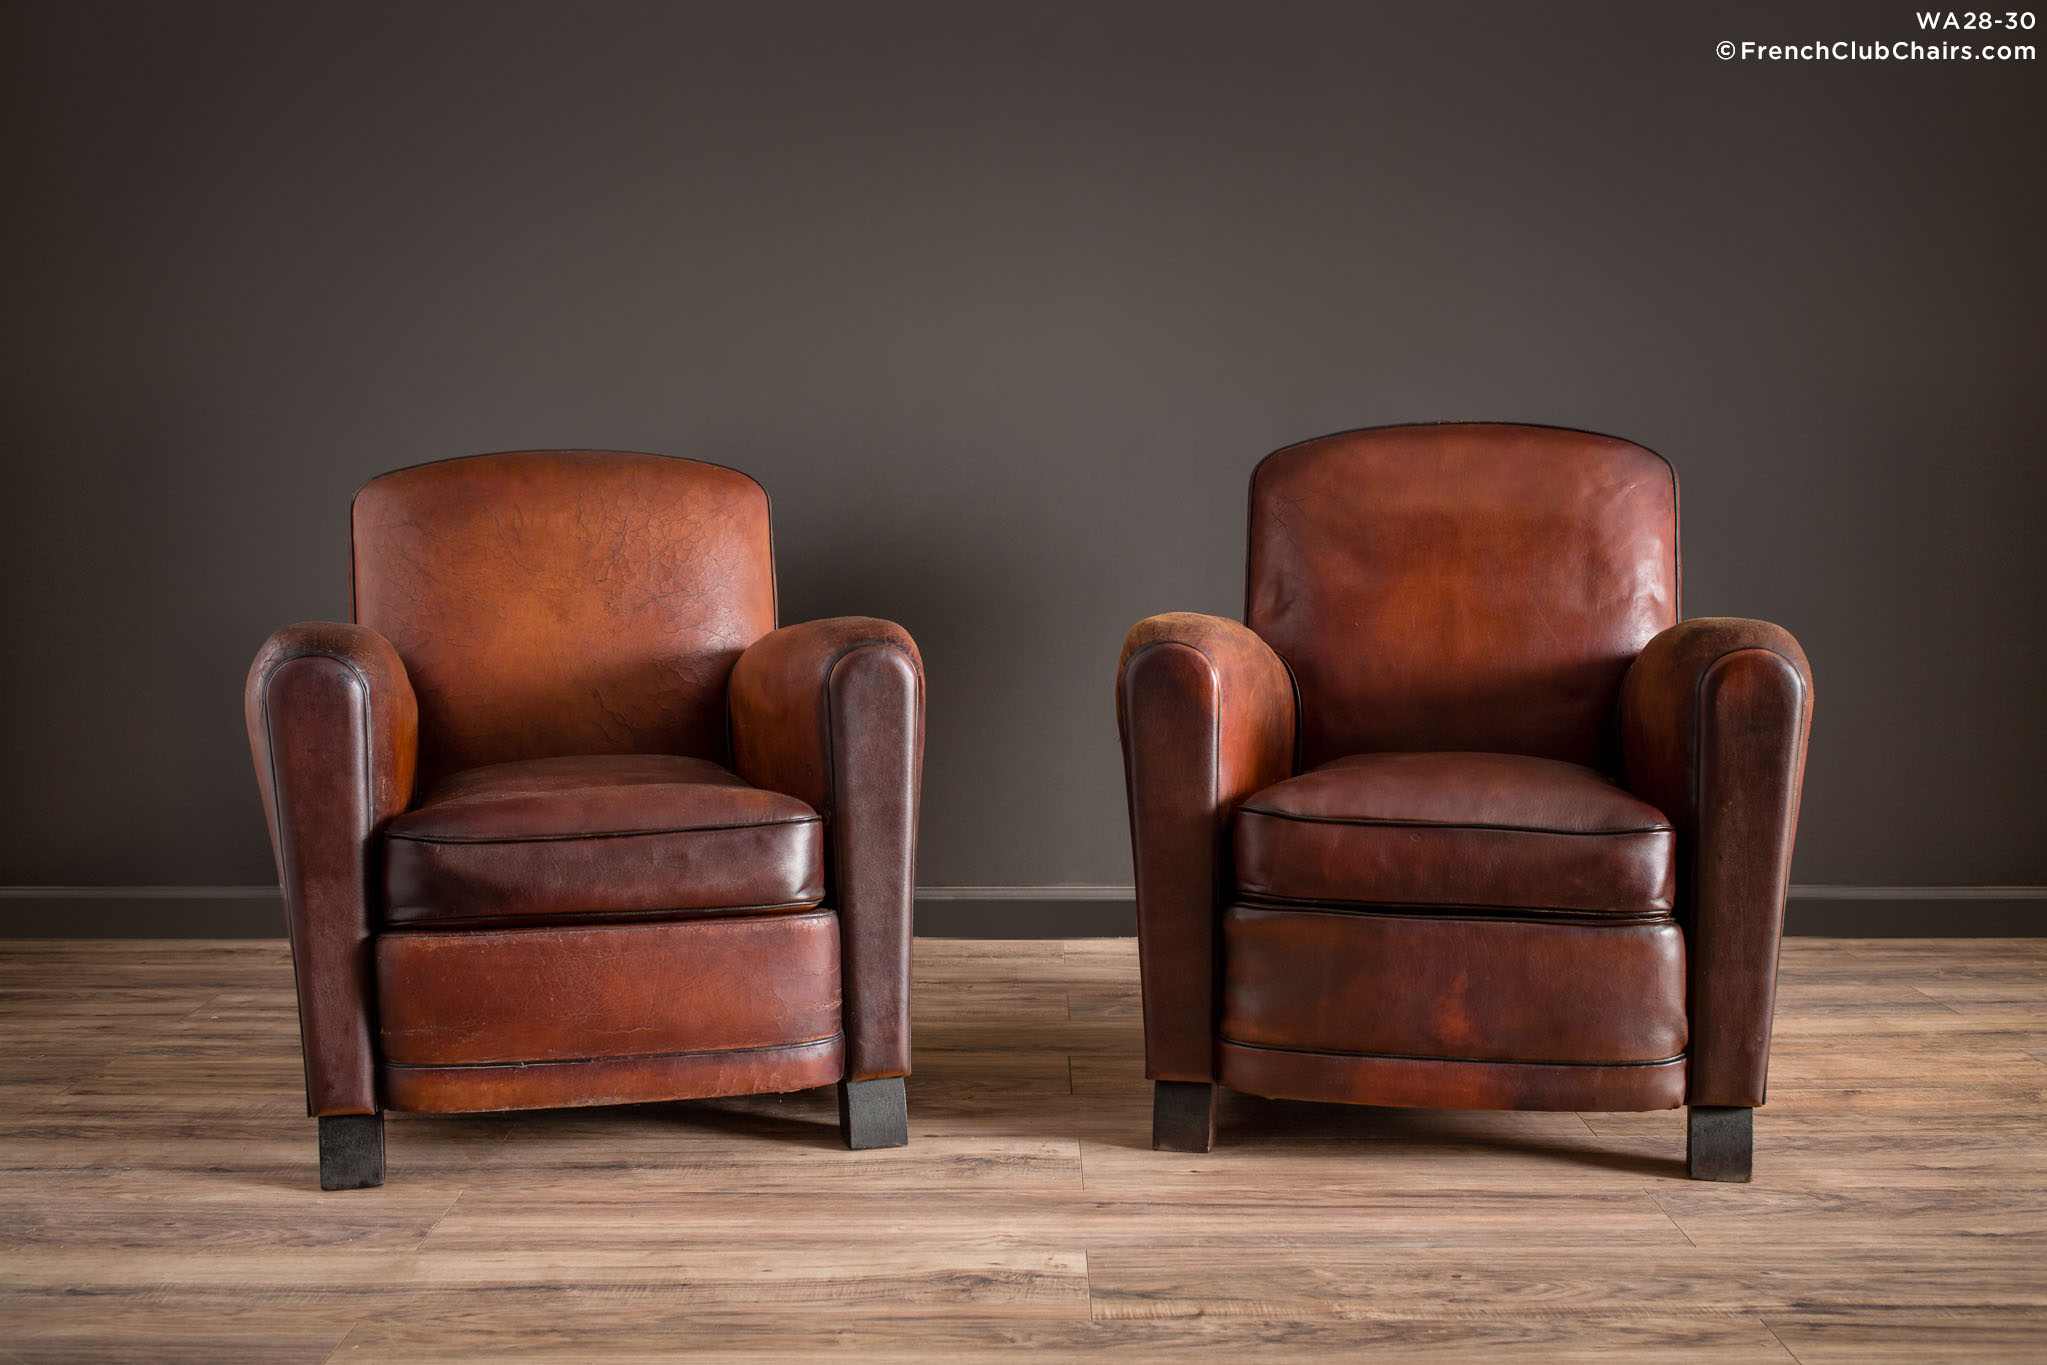 WA_28-30_Dark_Aubain_Library_Pair_R_1TQ1-williams-antiks-leather-french-club-chair-wa_fcccom